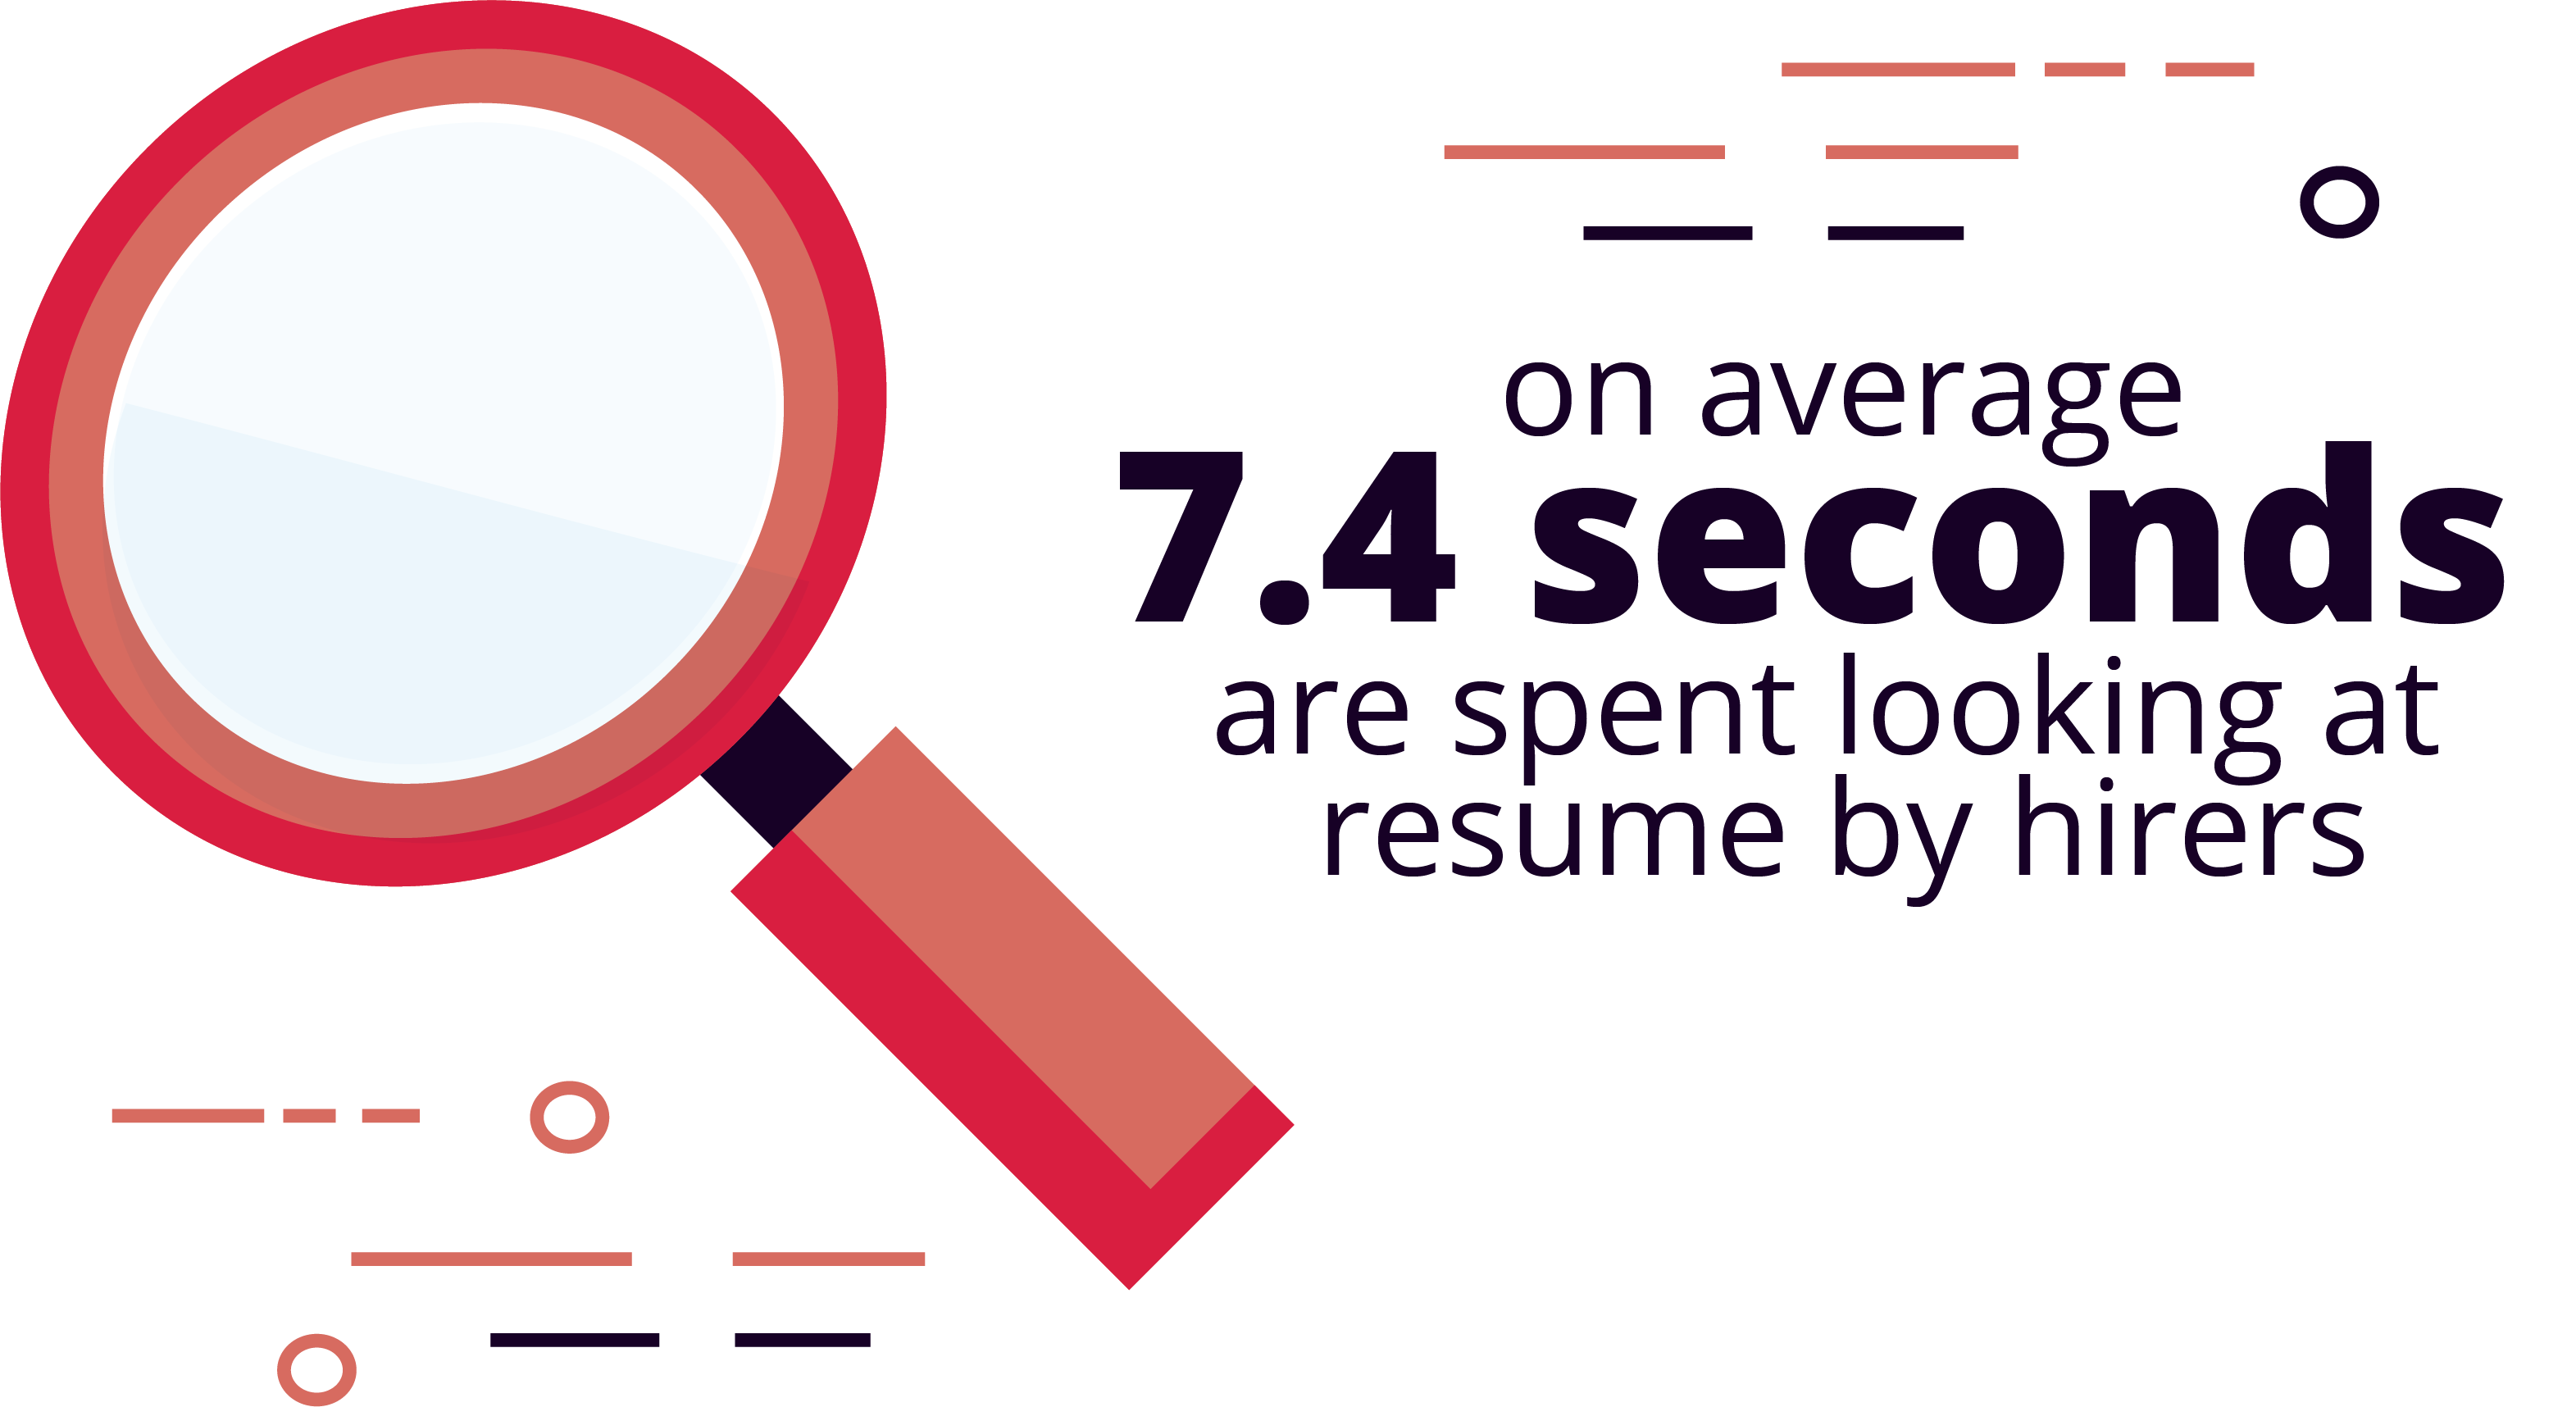 7.4 seconds are spent looking at resumes by hirers